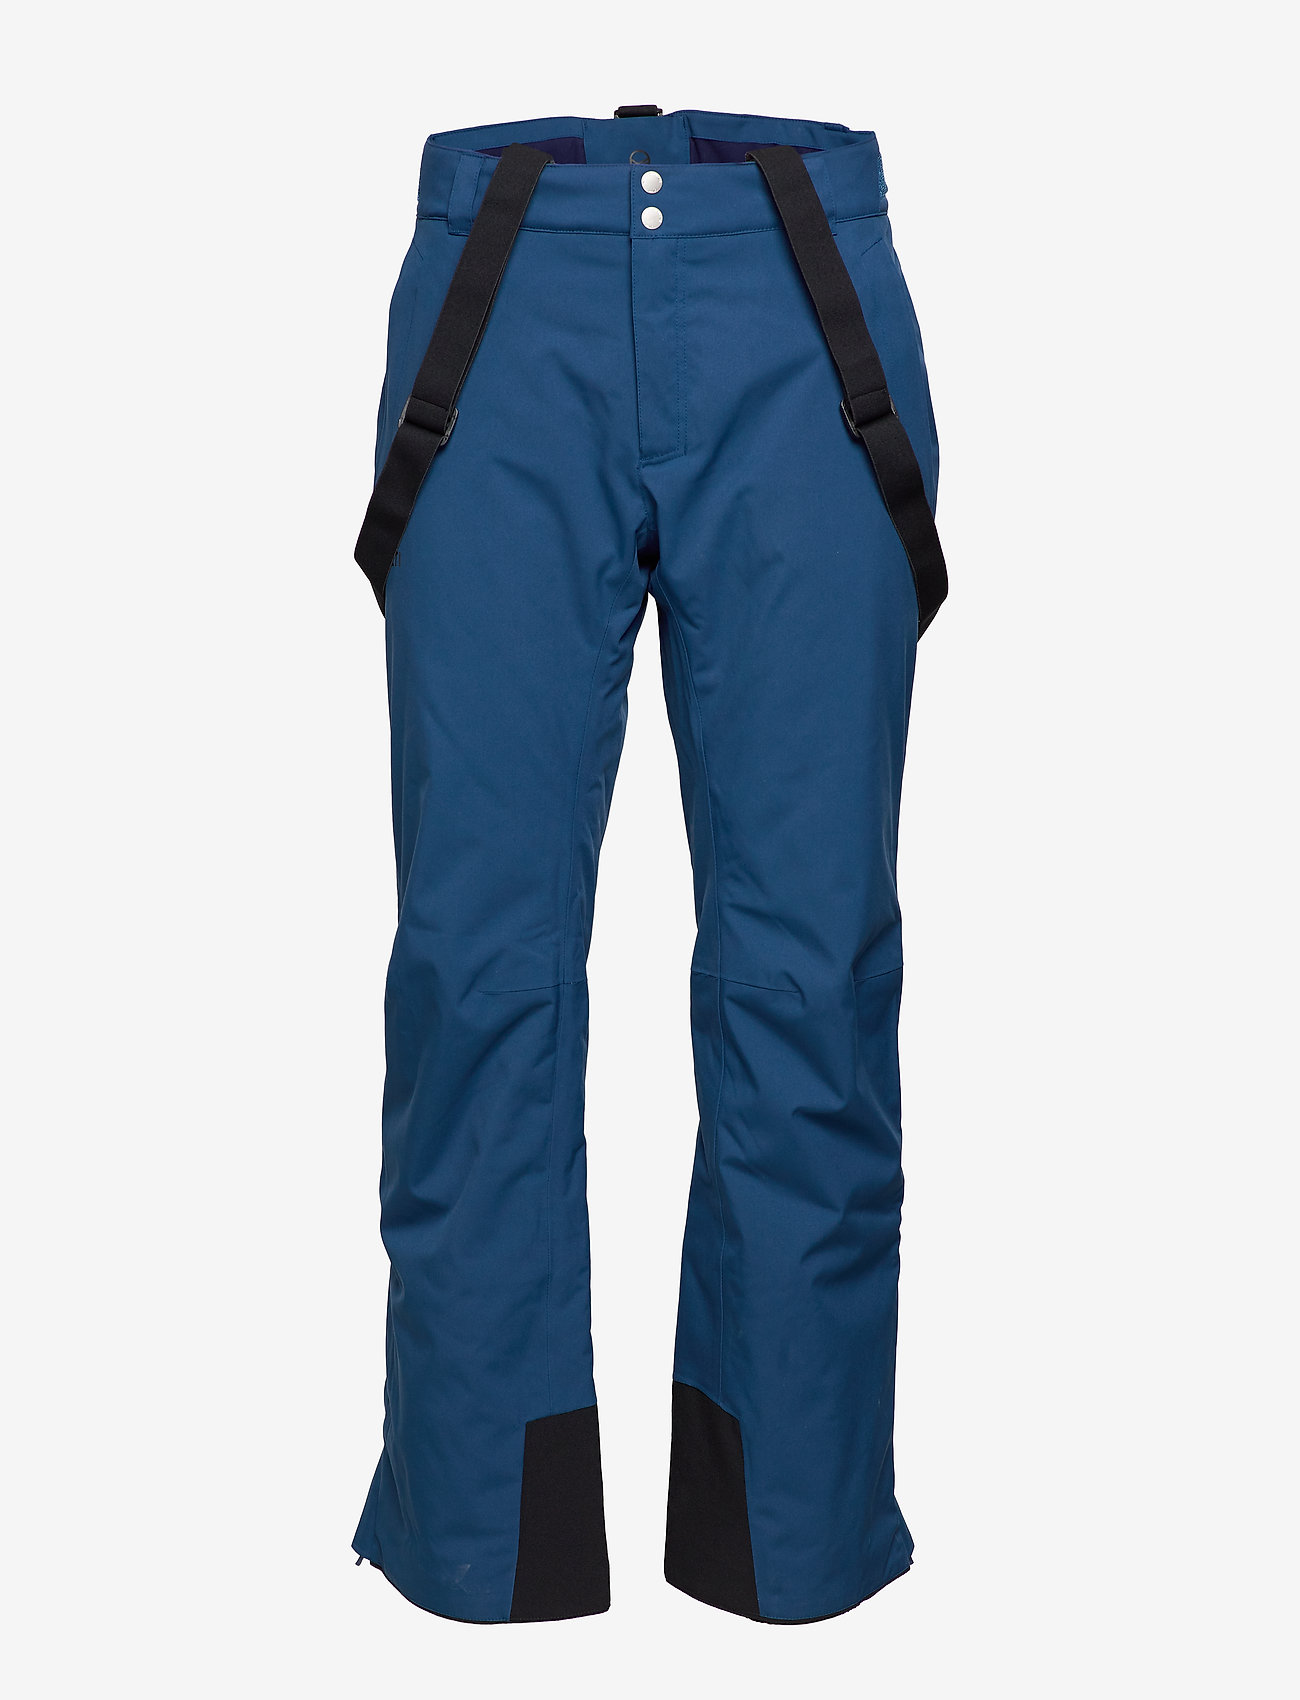 Halti - Puntti Men's DX Ski Pants - insulated pantsinsulated pants - blue opal - 0